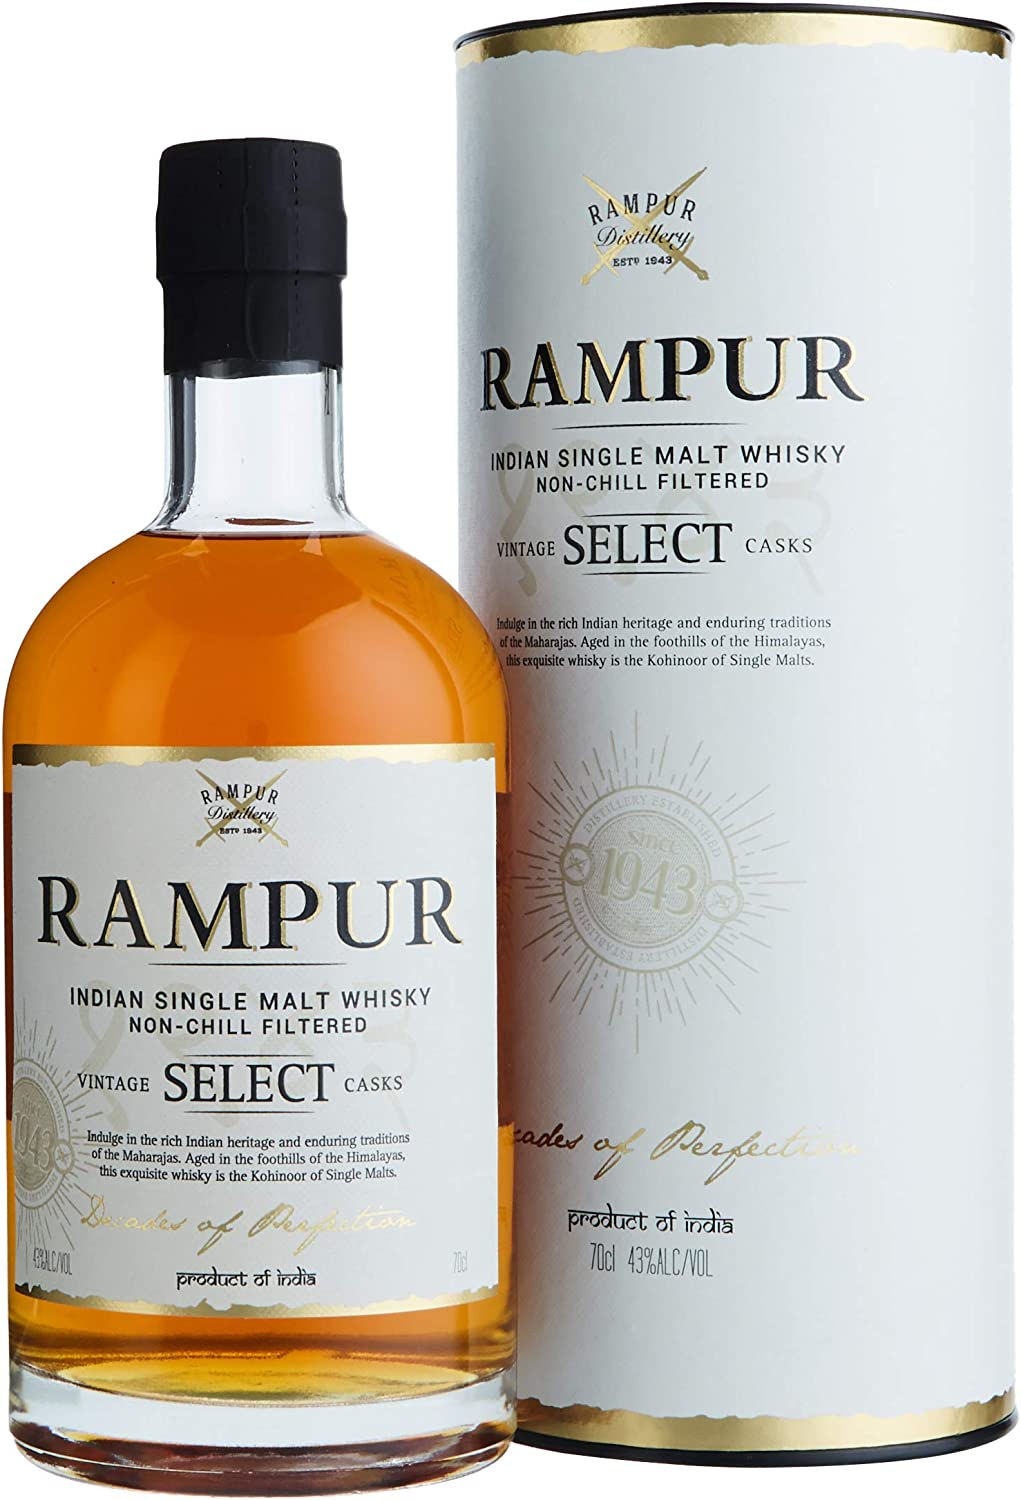 Rampur Vintage Select Casks Indian Single Malt Indischer Whisky